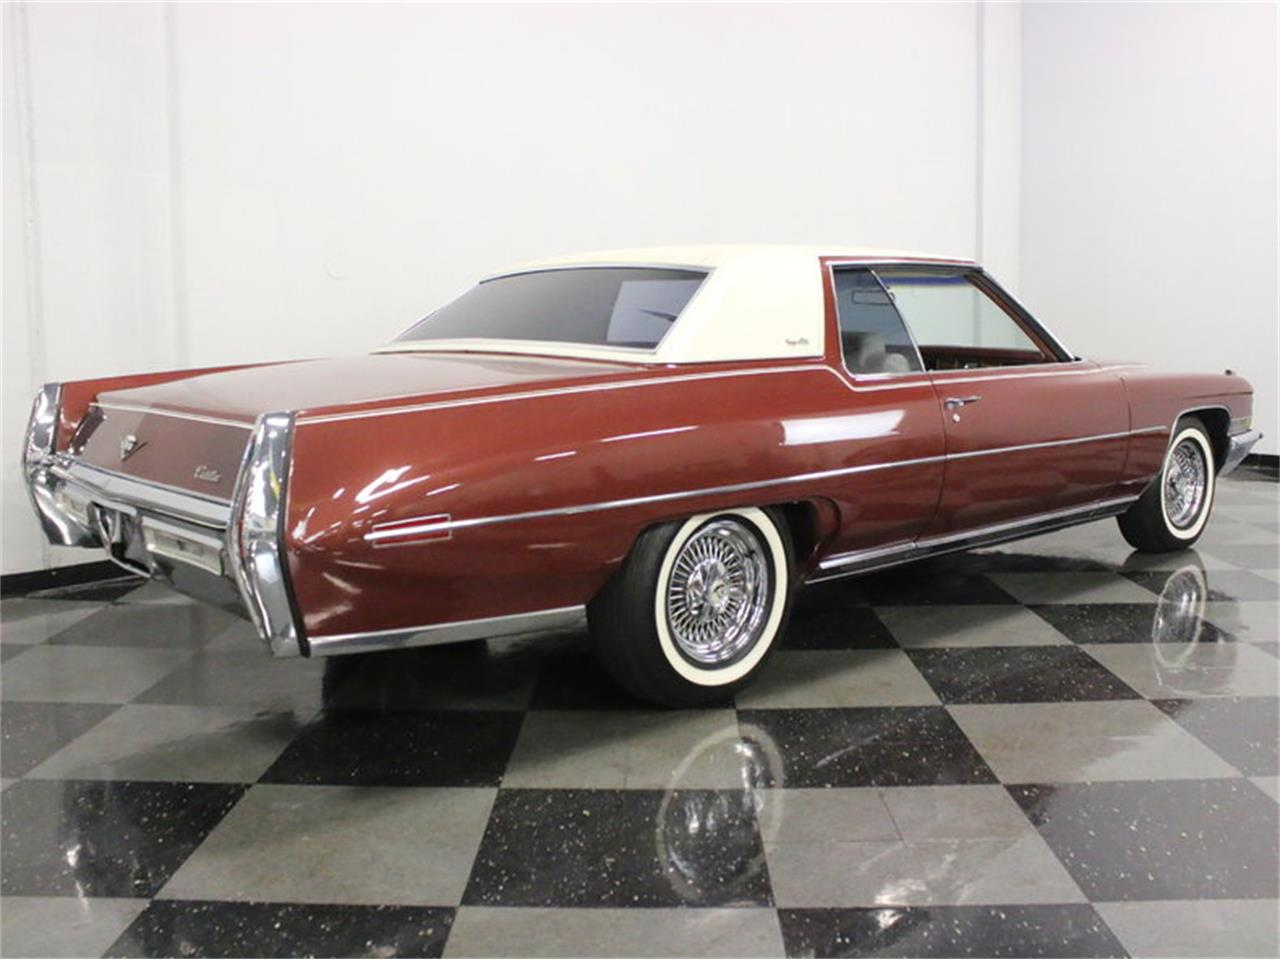 Large Picture of '72 Cadillac Coupe DeVille located in Ft Worth Texas Offered by Streetside Classics - Dallas / Fort Worth - L1A0